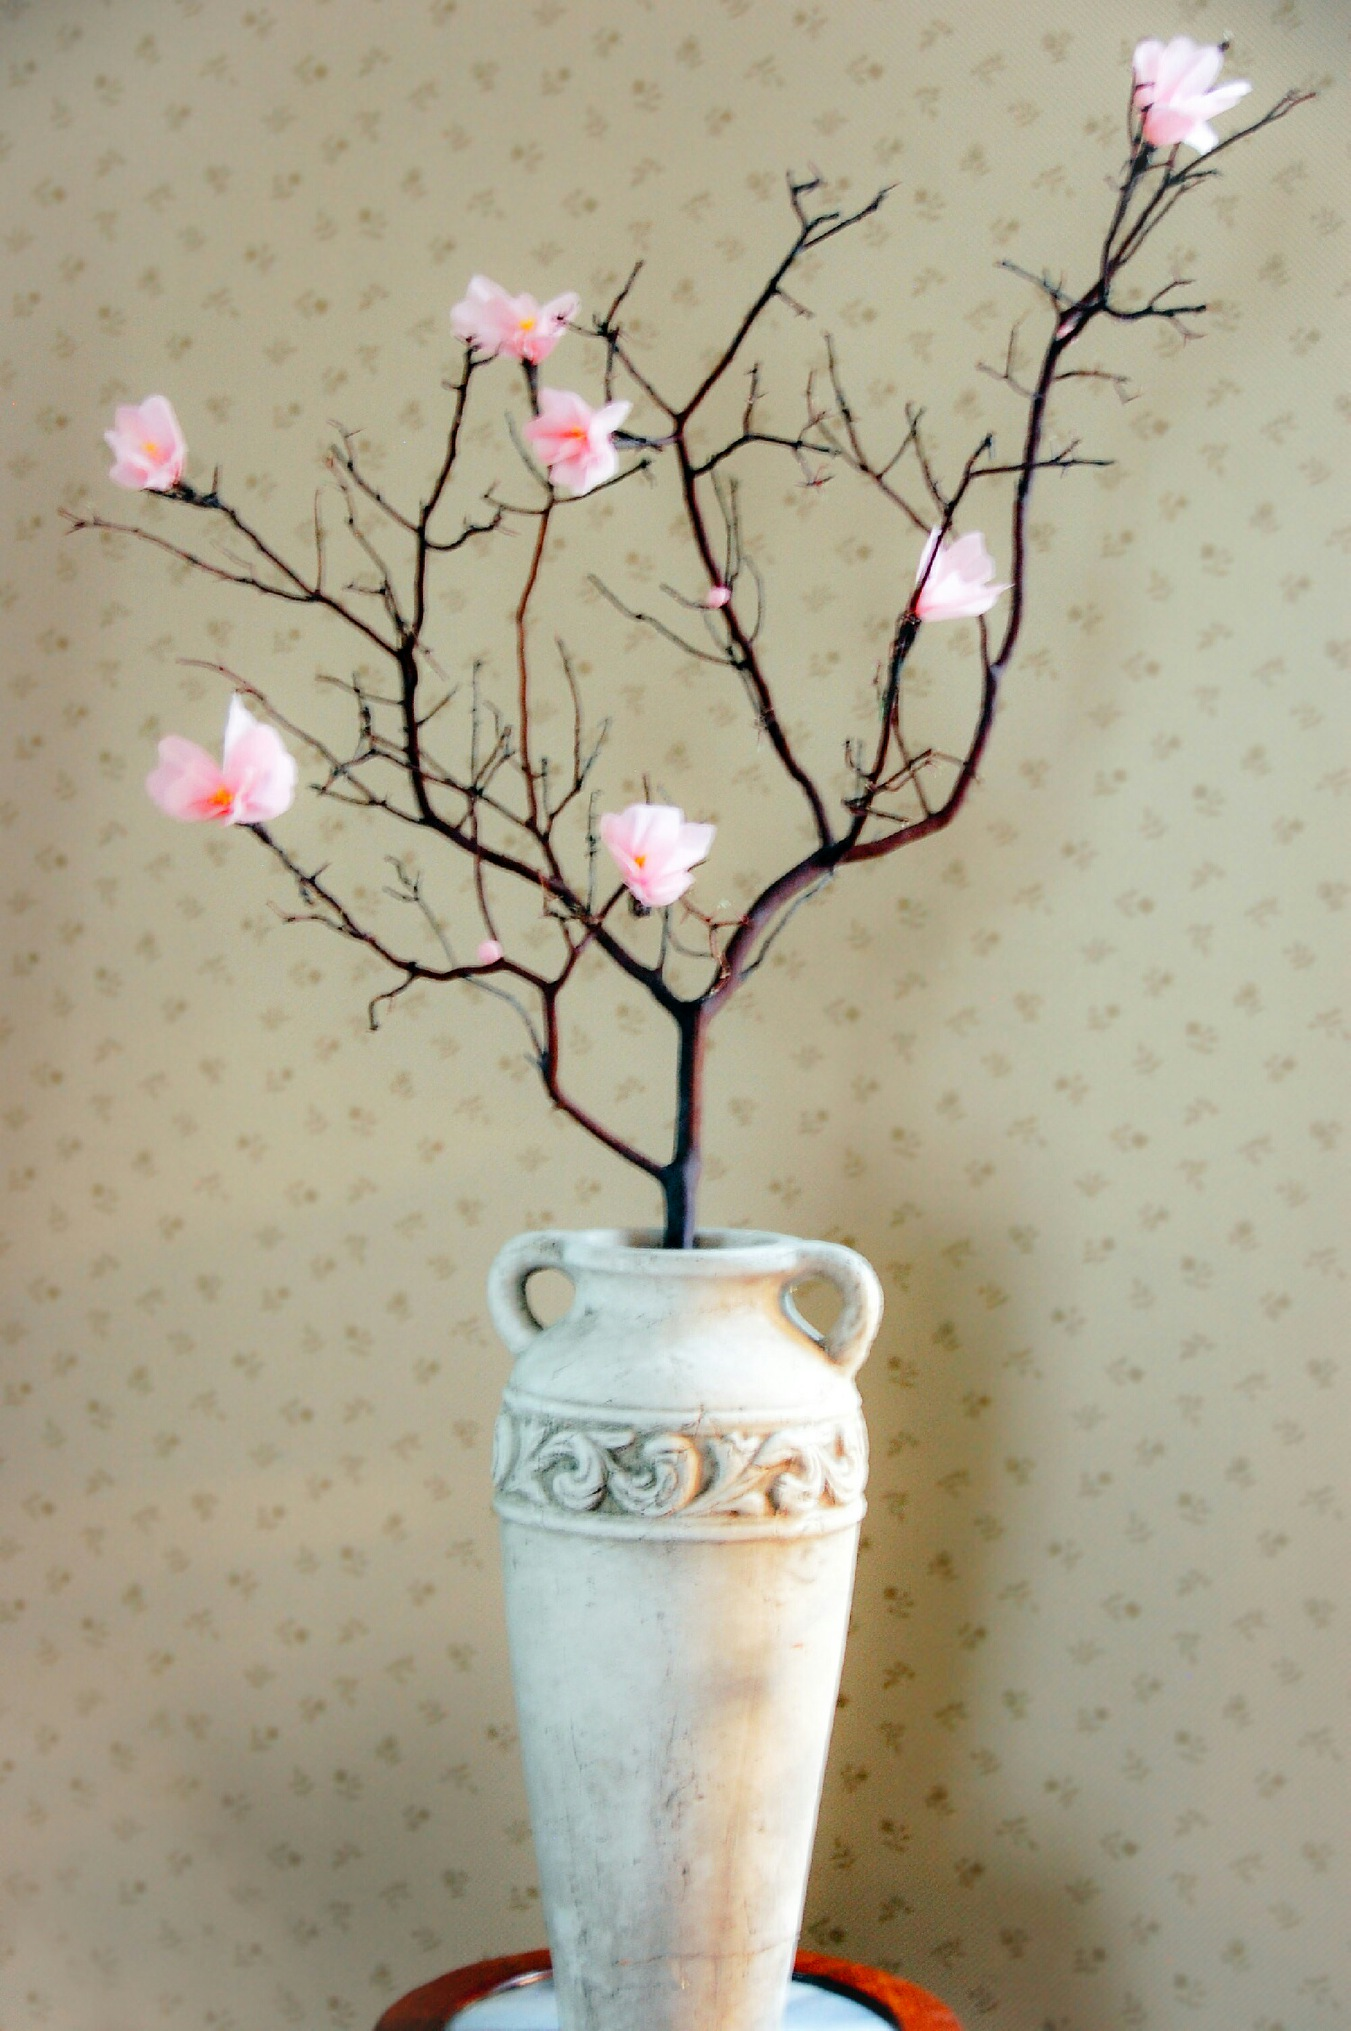 Here is an 24 inch Cherry Blossom Branch displayed in an 20 inch antique vase.